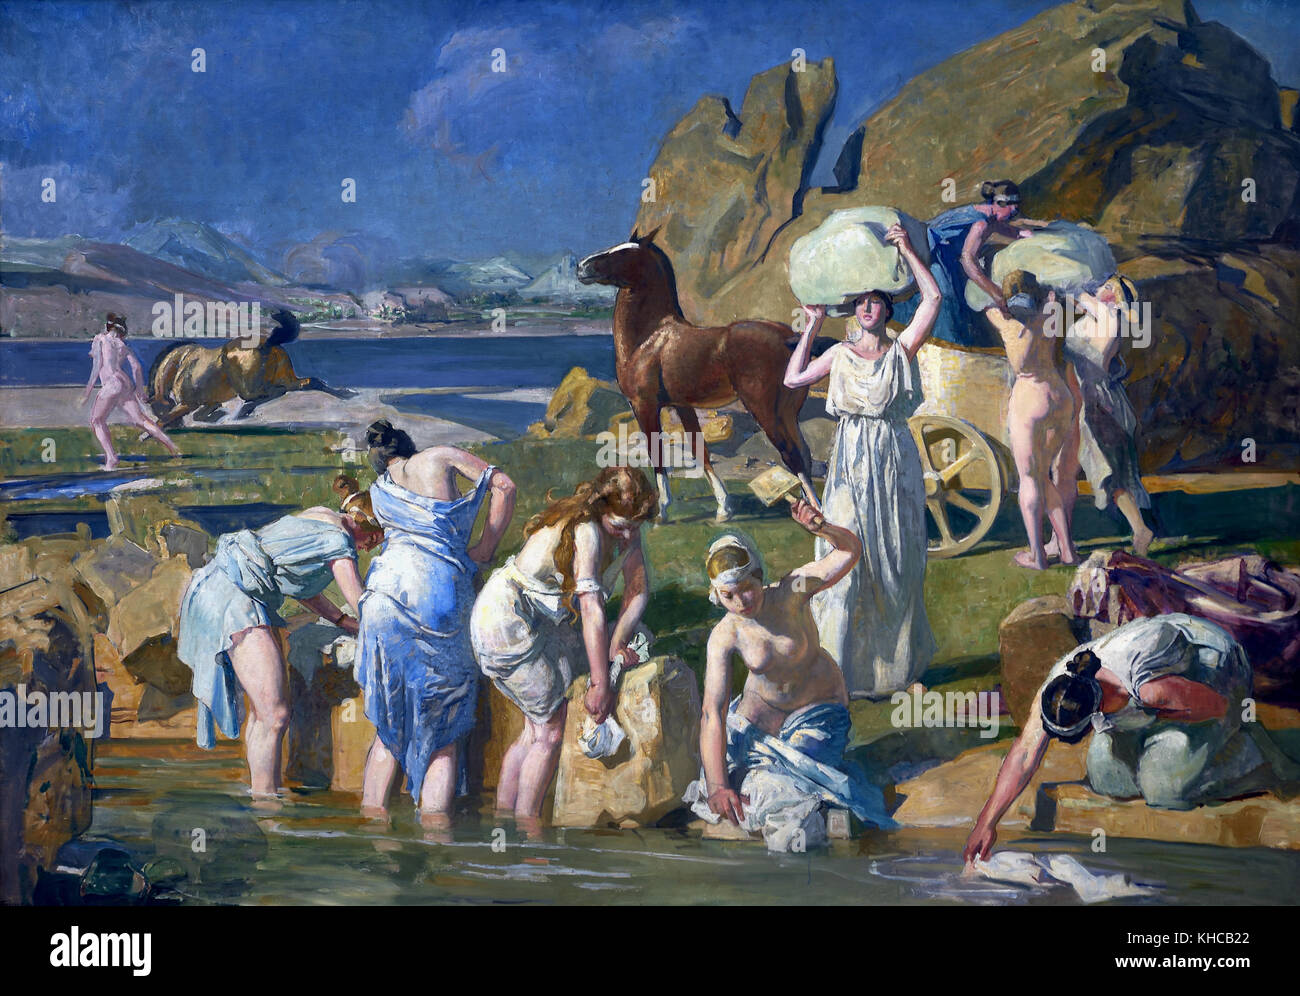 womens role in homers odyssey Roles of women in homer's odyssey introduction in homer's the odyssey, a poem about an aging hero, odysseus, trying to find his way home, there are several female characters that can lead us to draw conclusions about.